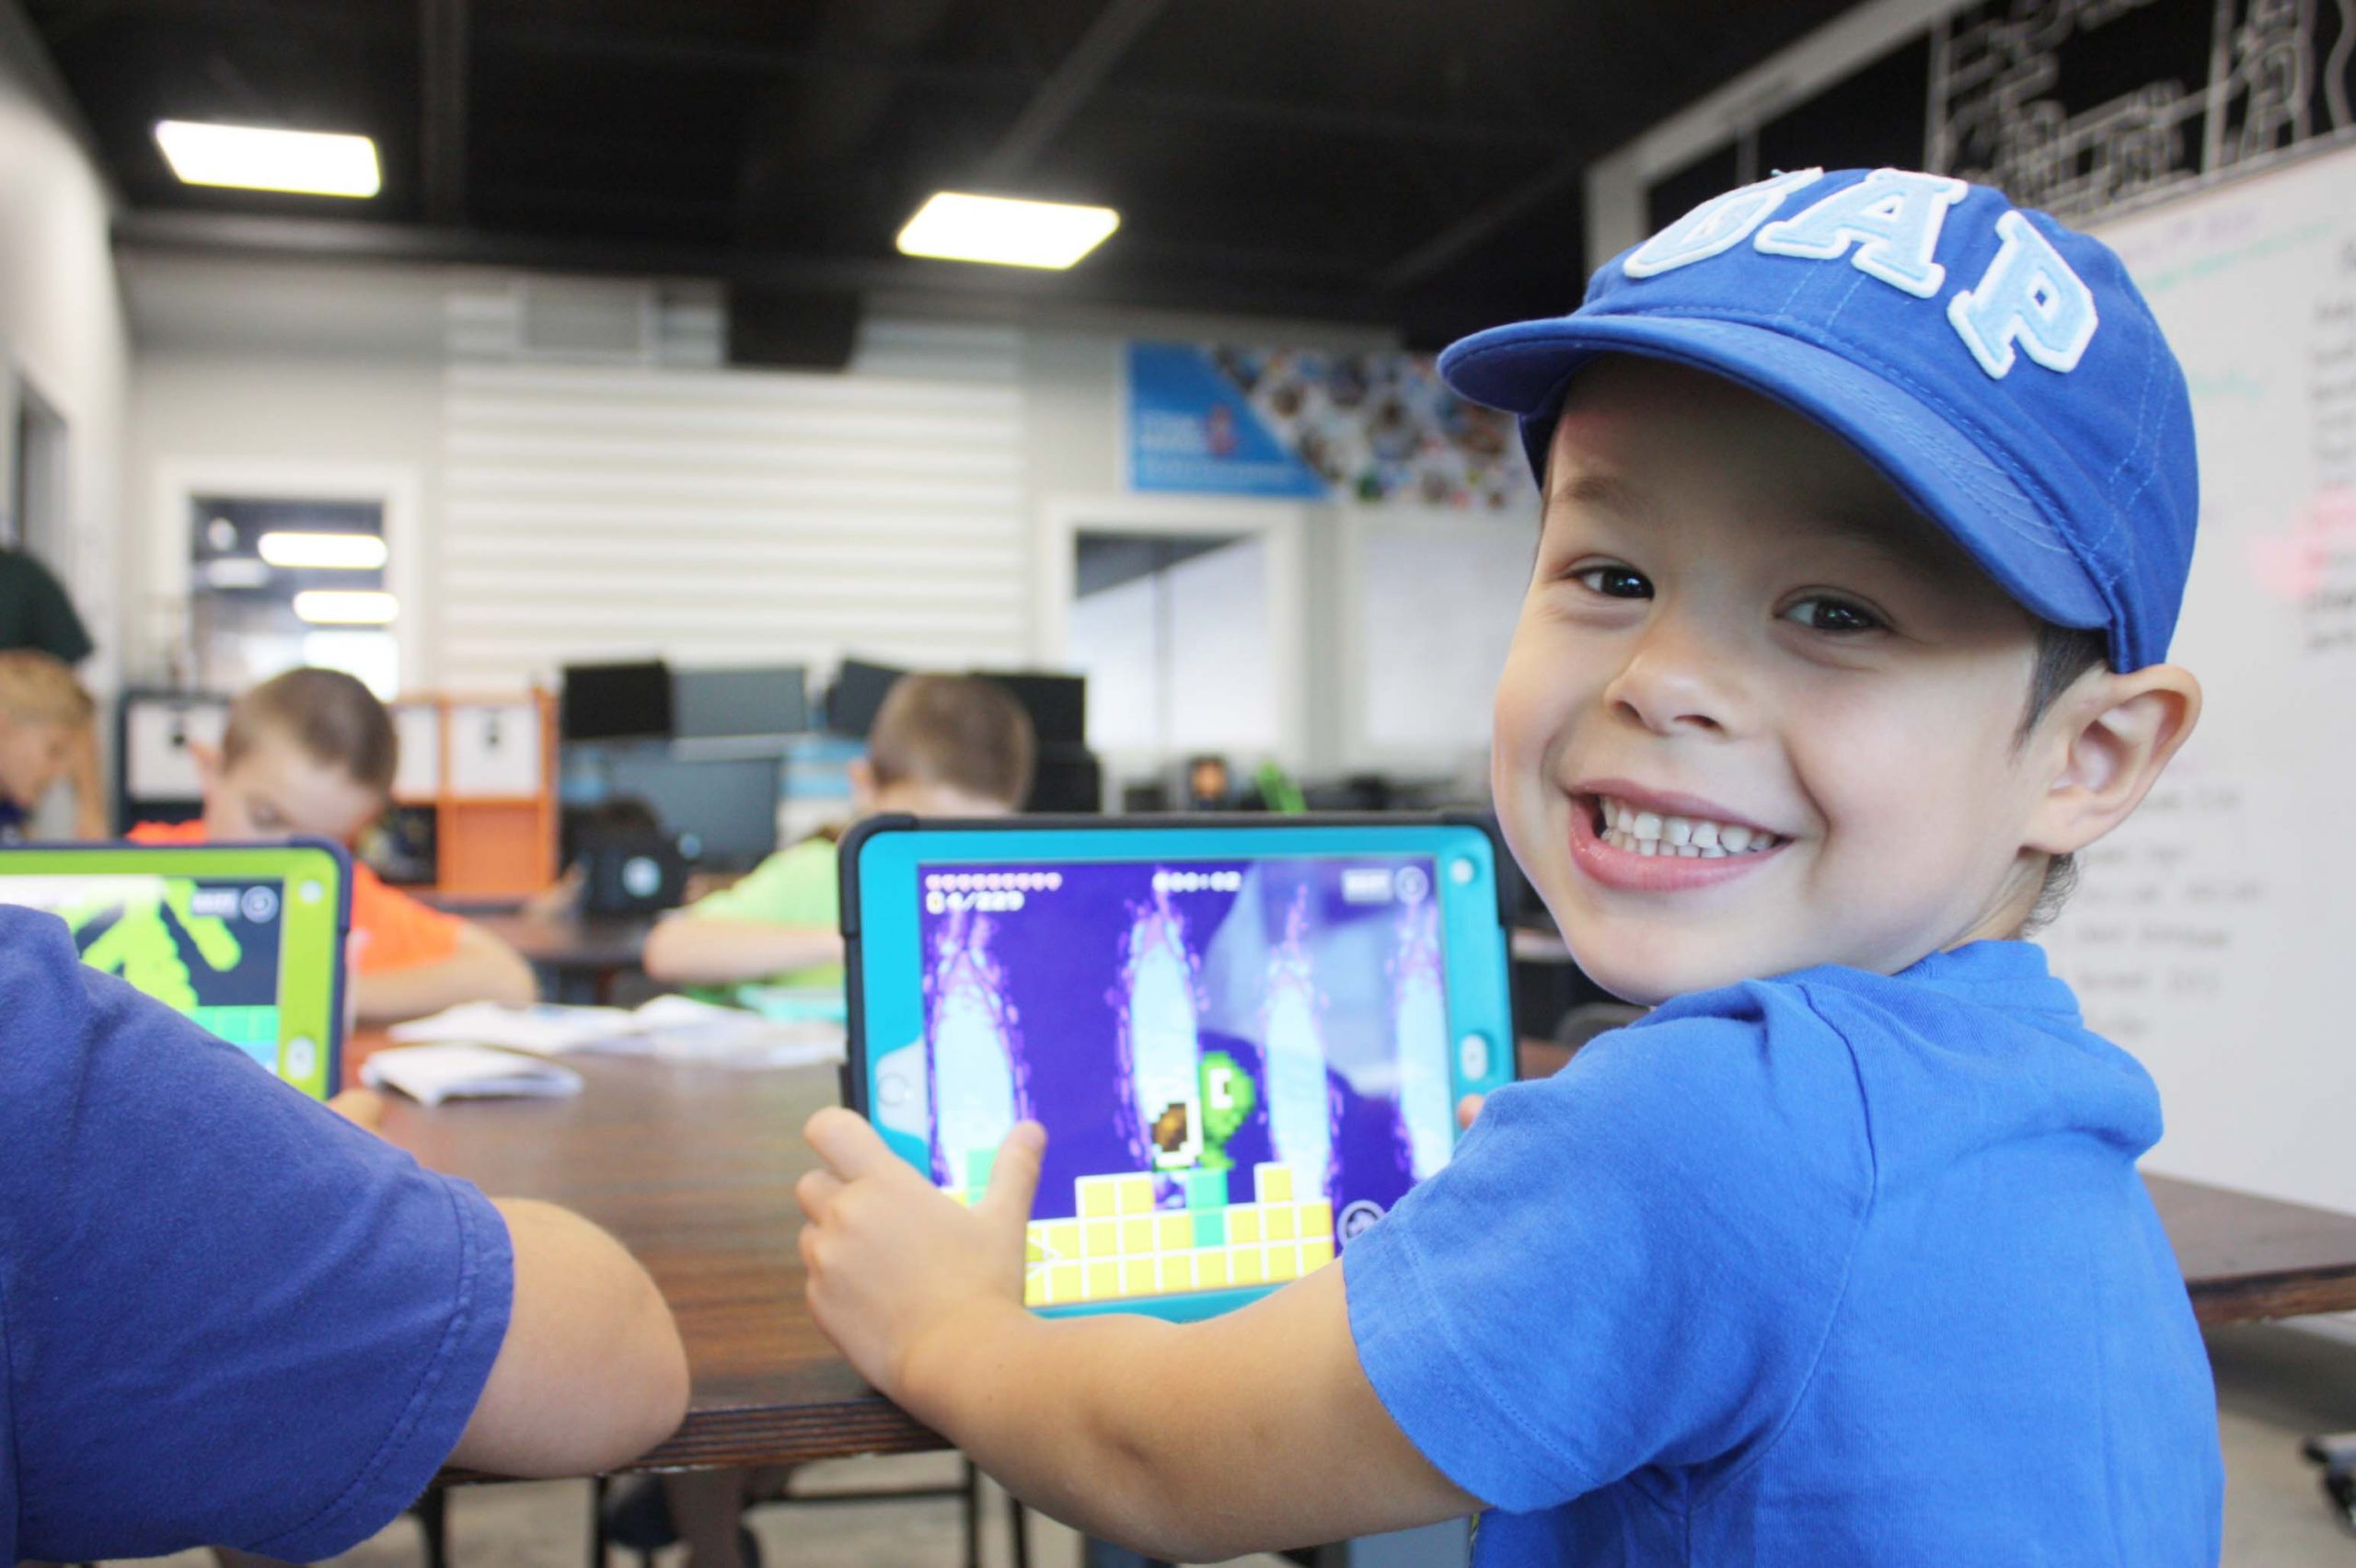 Top 5 STEM Activities to Keep Your Kids Occupied This Summer